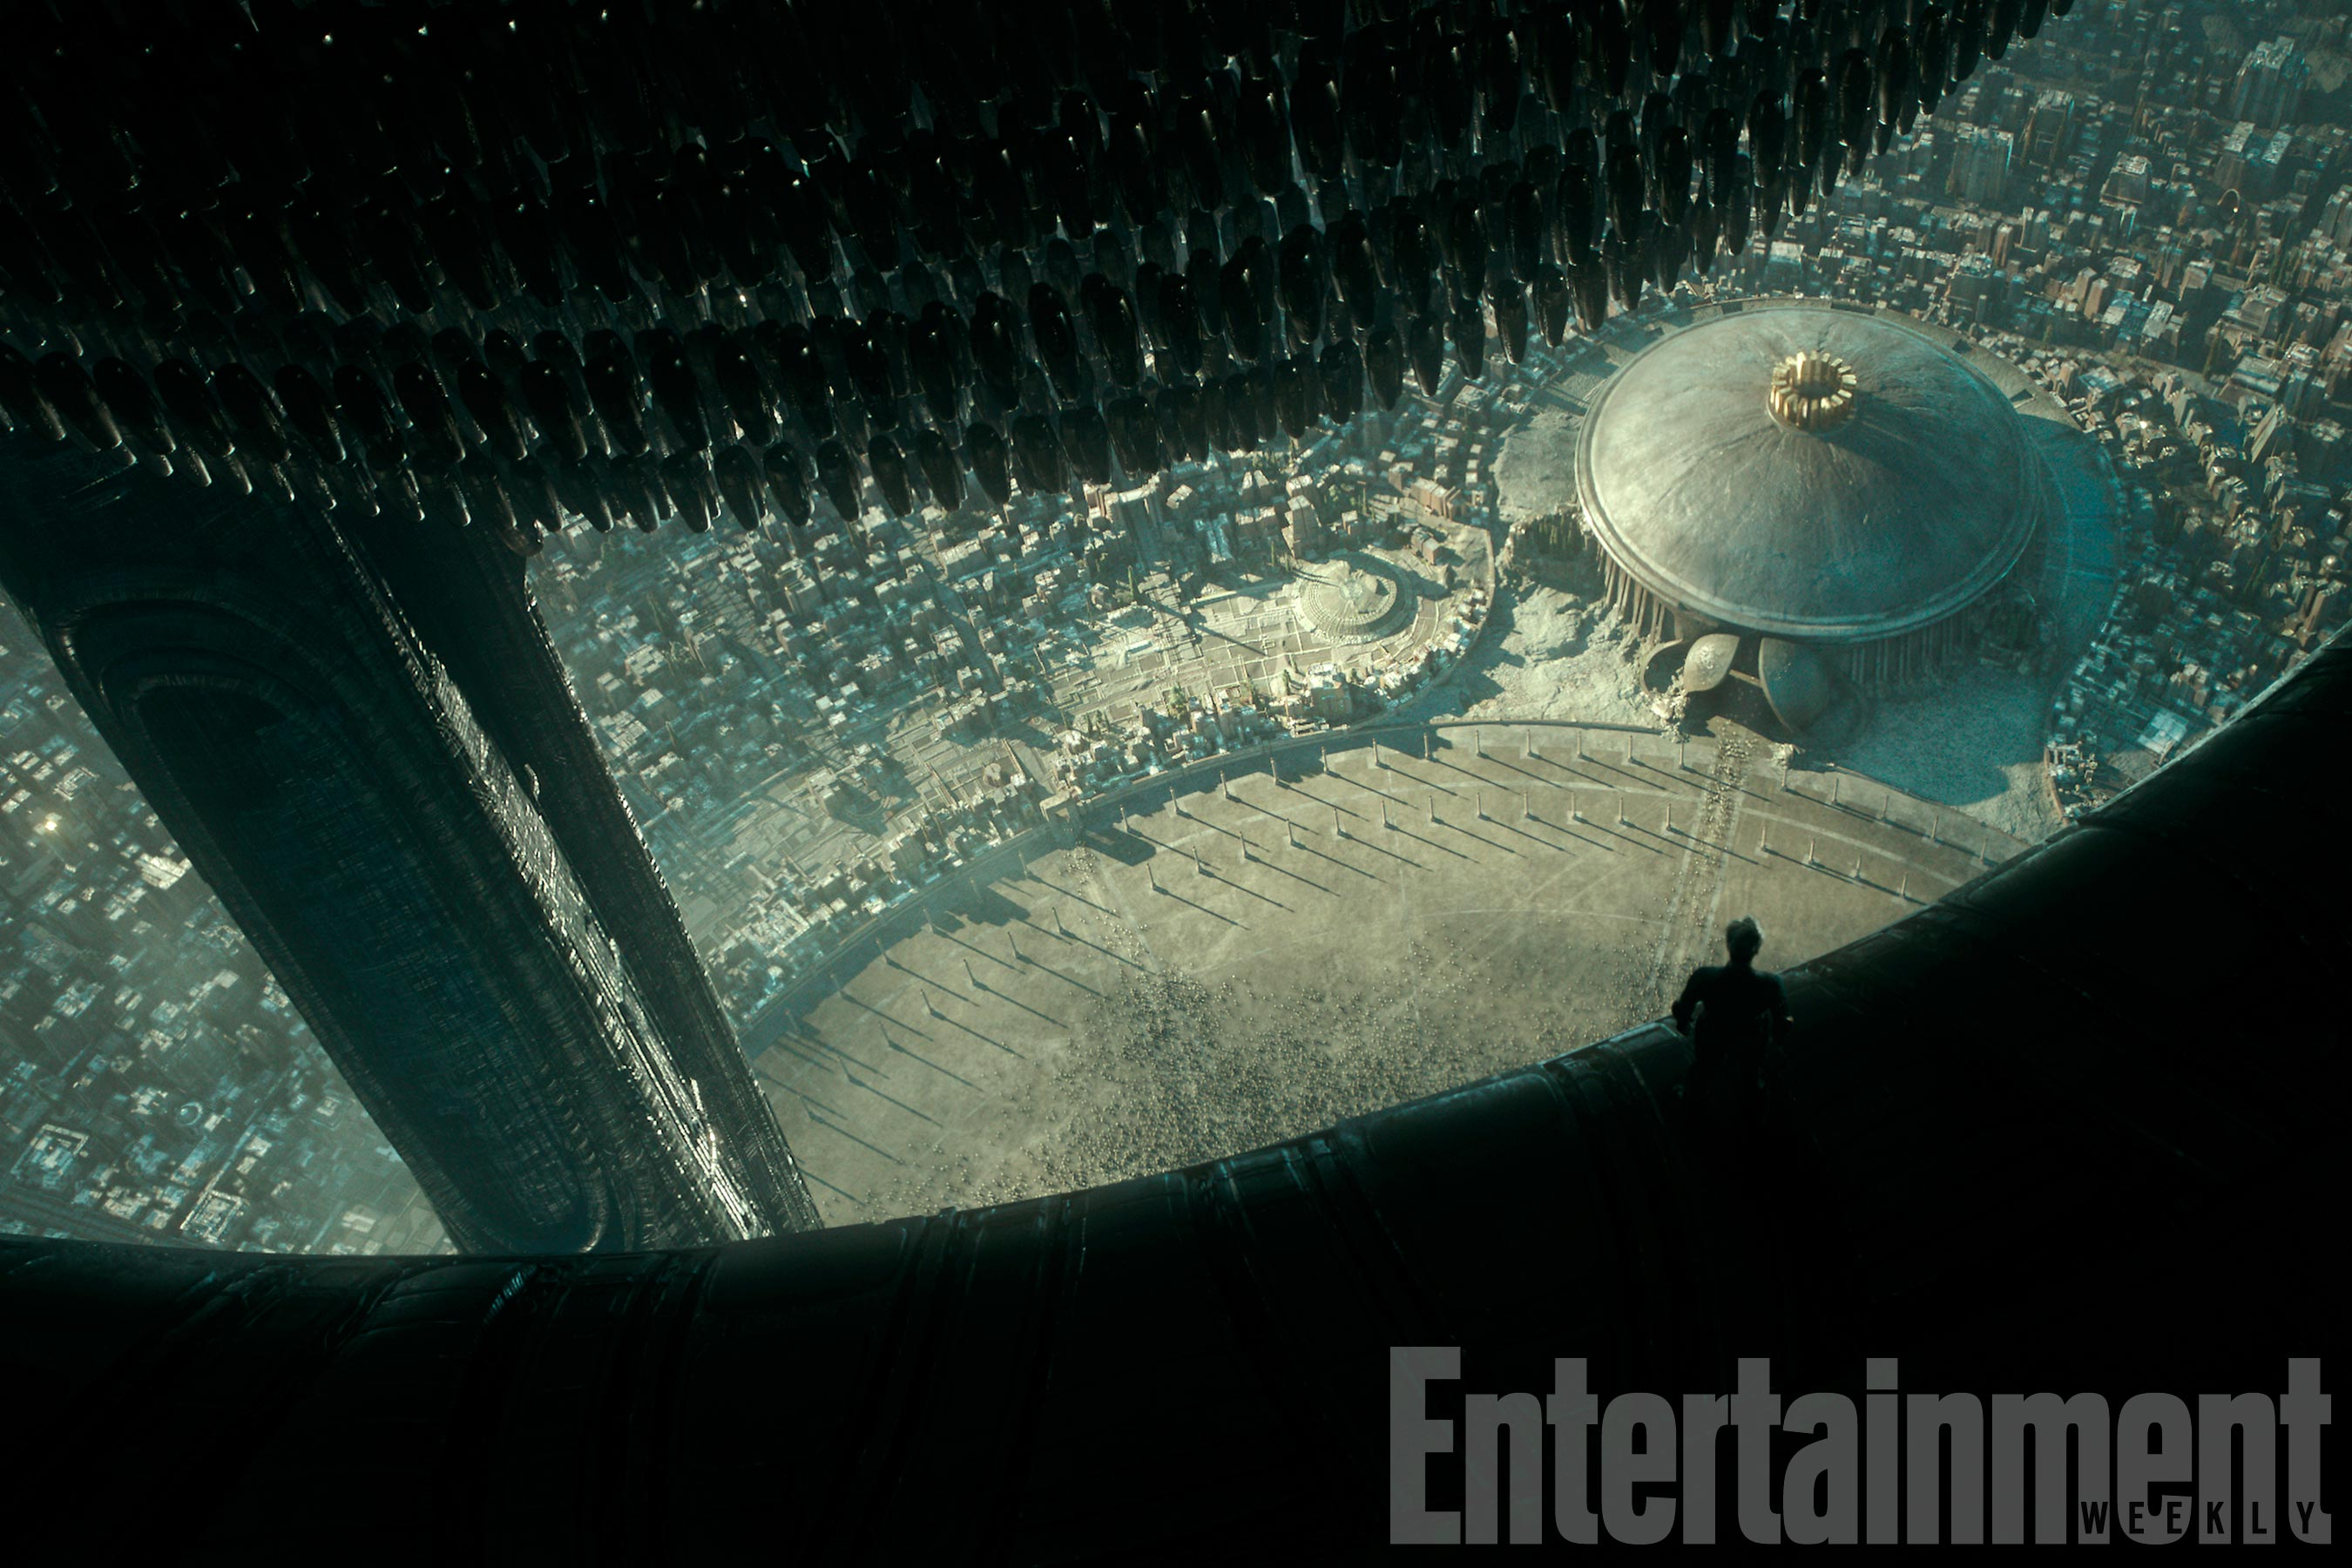 New Entertainment Weekly Alien: Covenant Stills